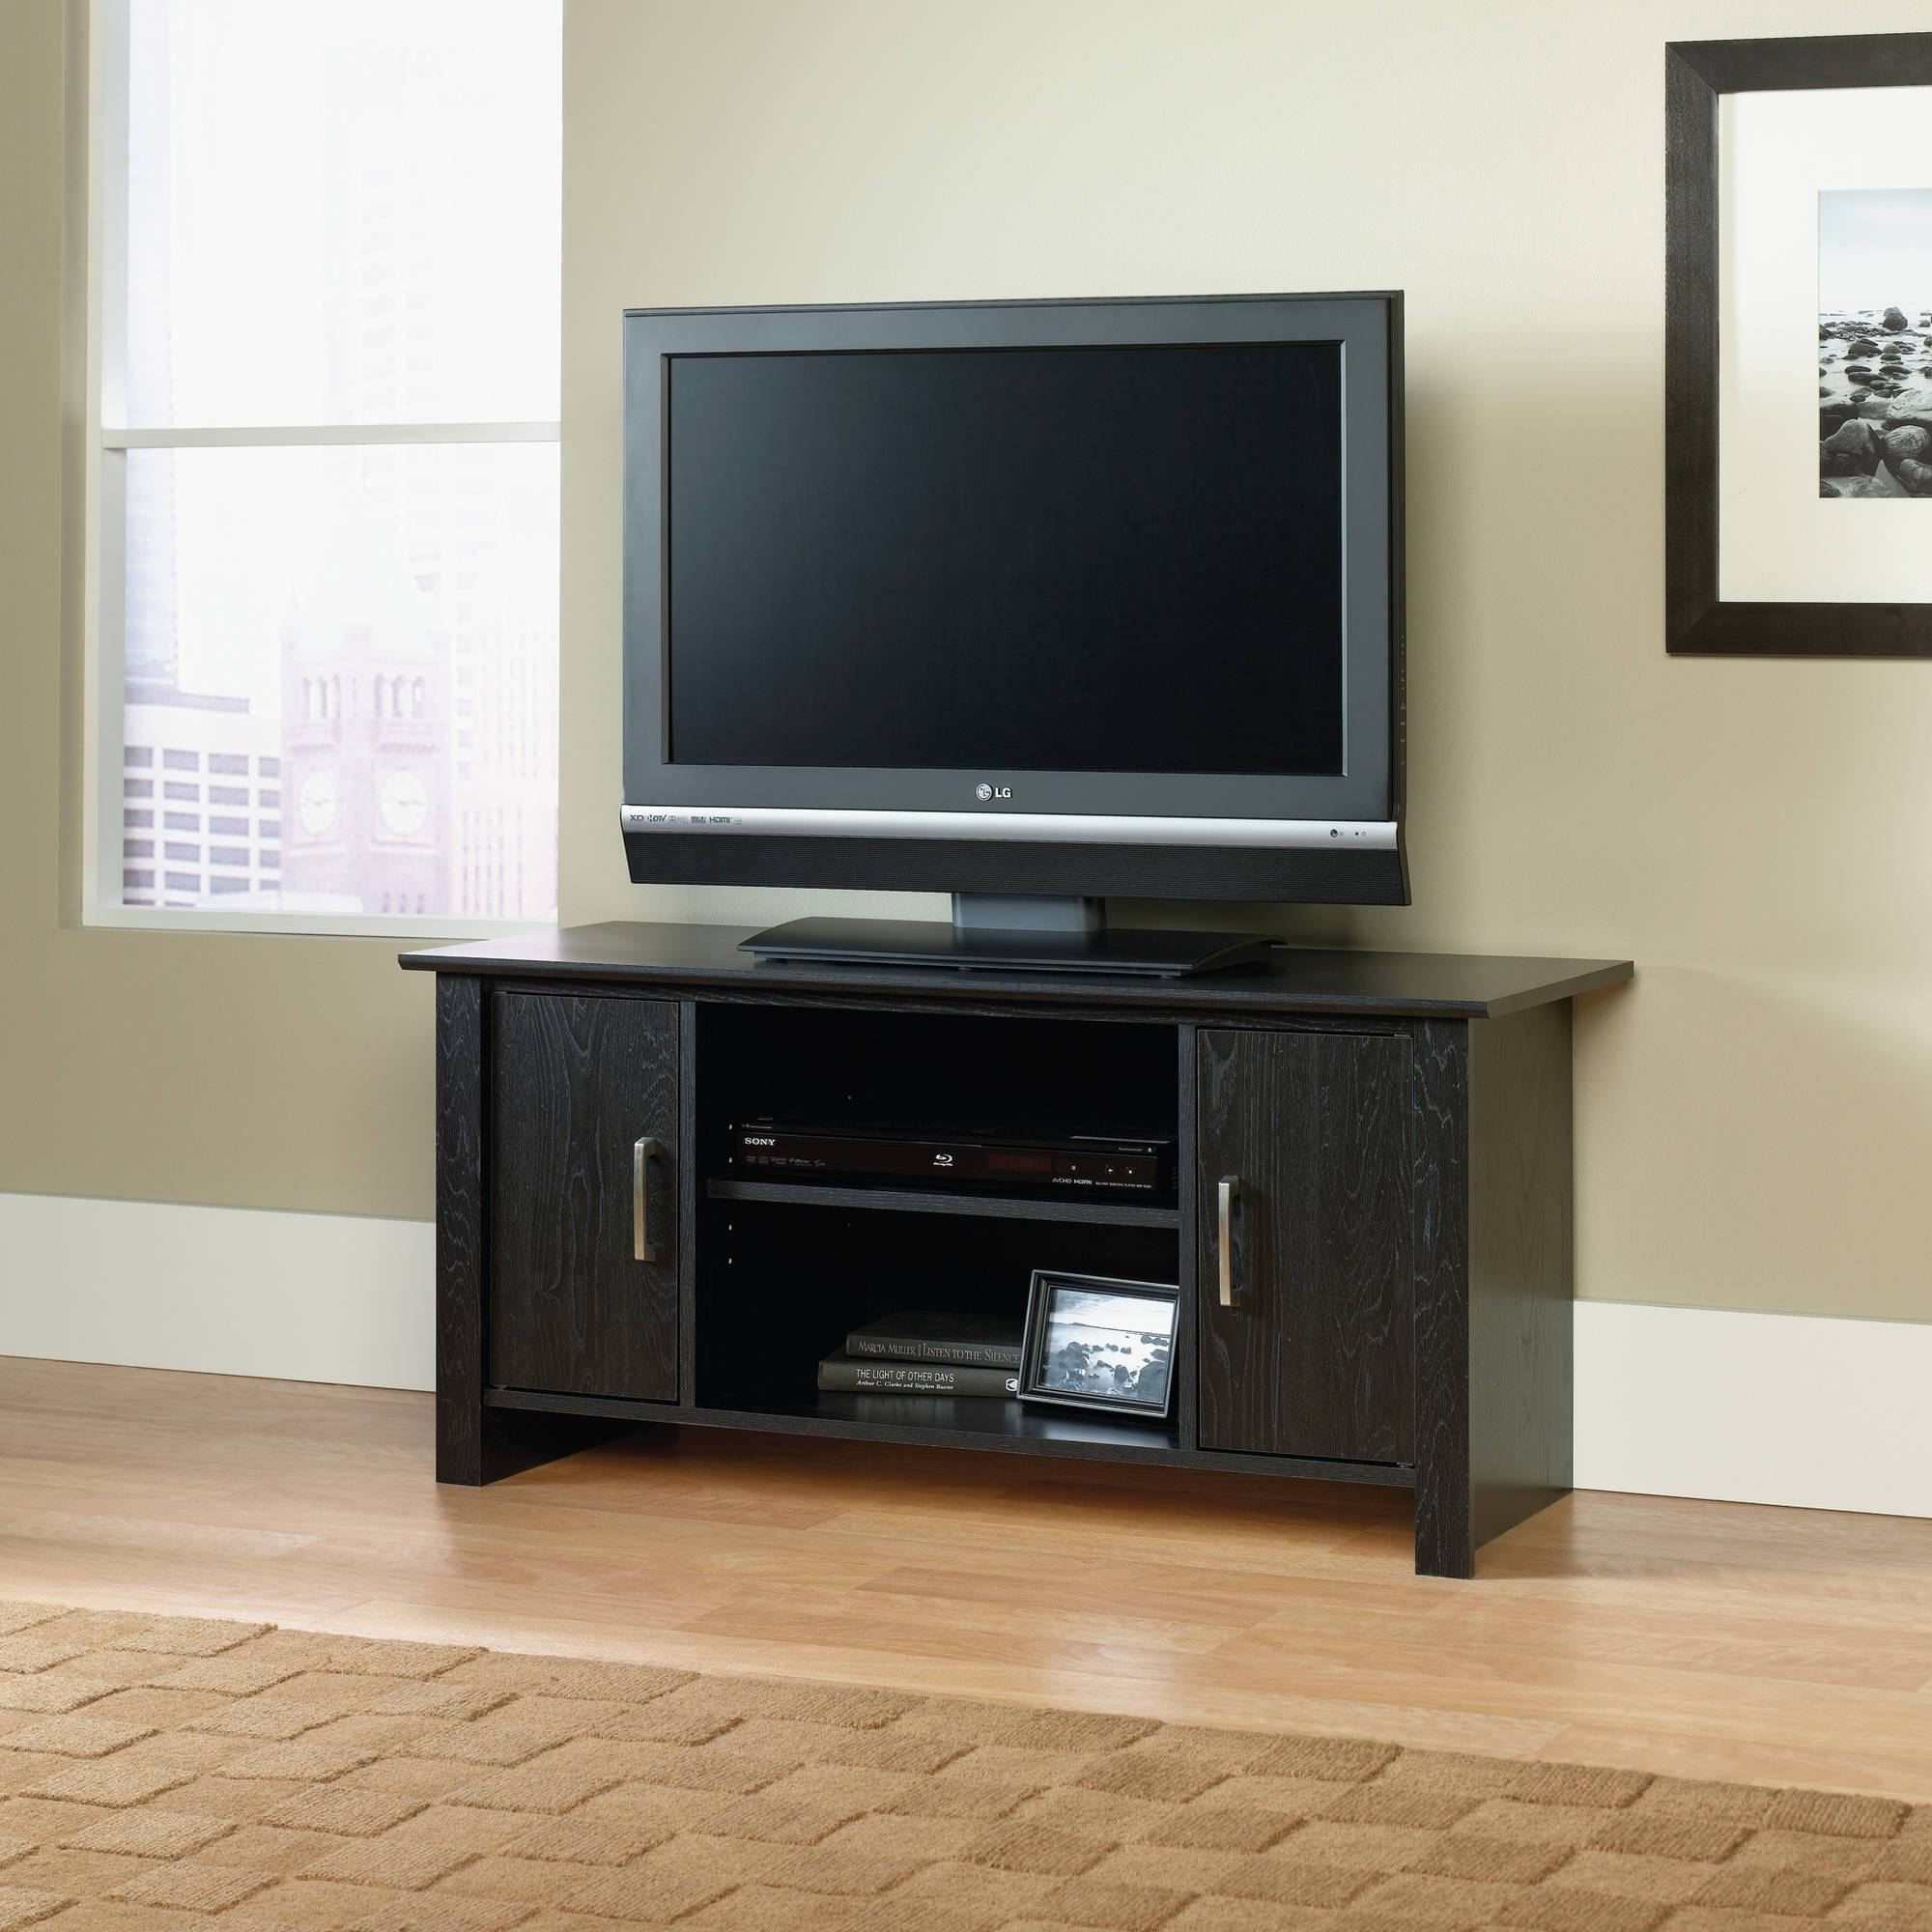 Tv Stands & Entertainment Centers – Walmart Intended For Cheap Wood Tv Stands (View 11 of 15)